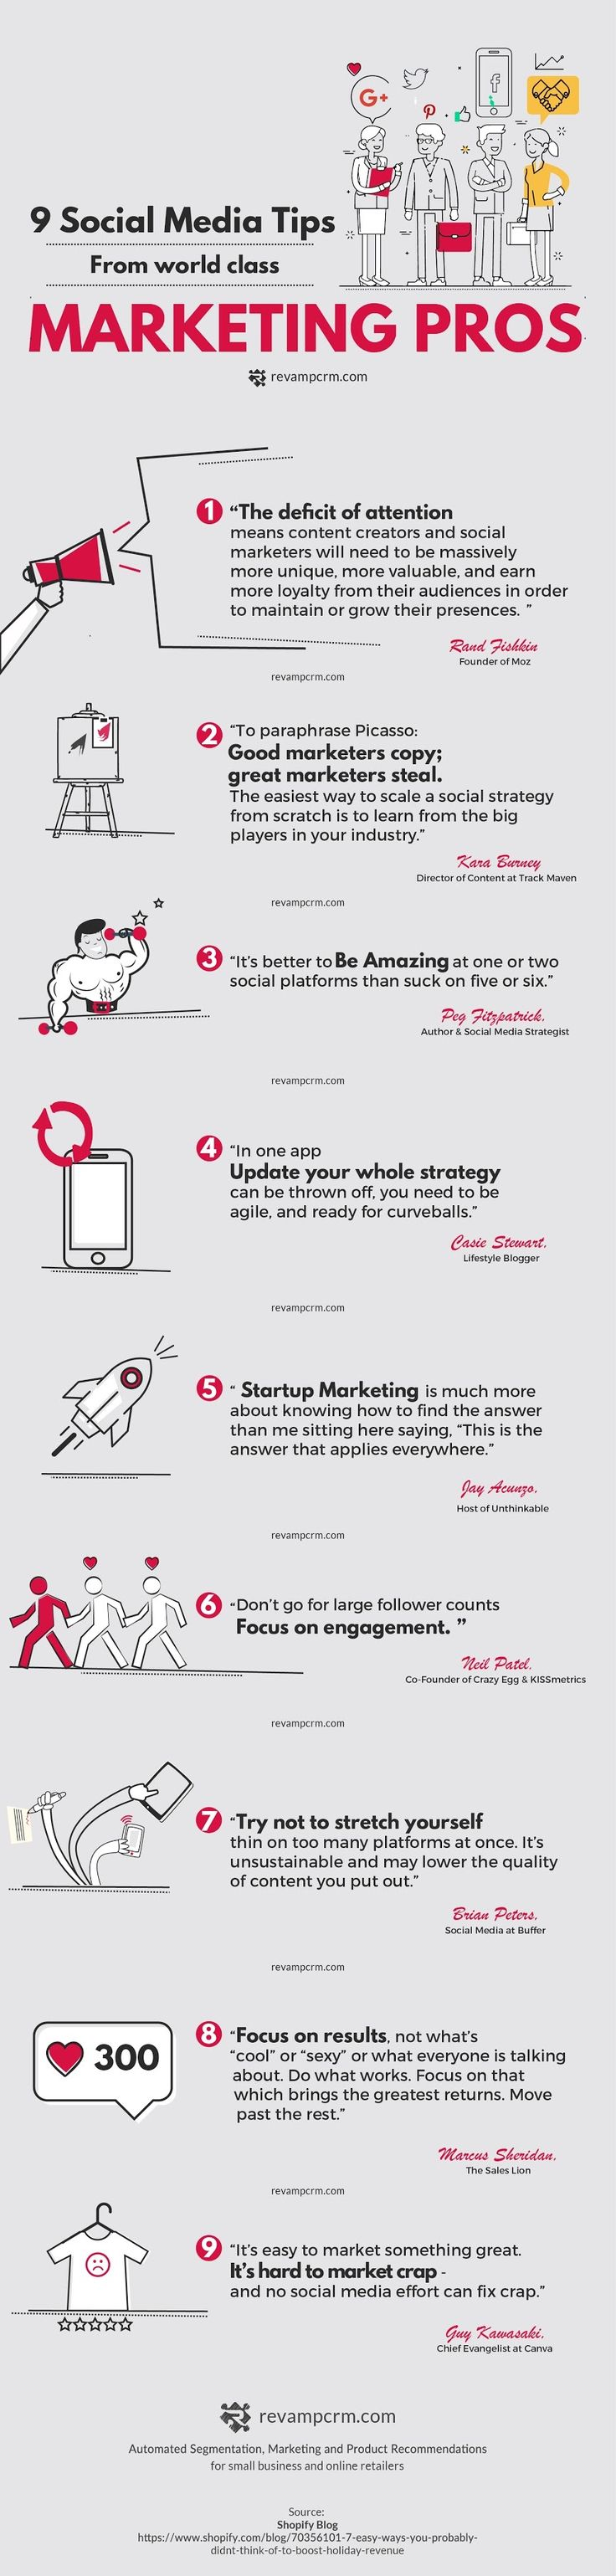 9 #Social #Media Tips From #World #Class #Marketing Pros - Do you fancy an infographic? There are a lot of them online, but if you want your own please visit http://linfografico.com/en/prices/ Online girano molte infografiche, se ne vuoi realizzare una tu